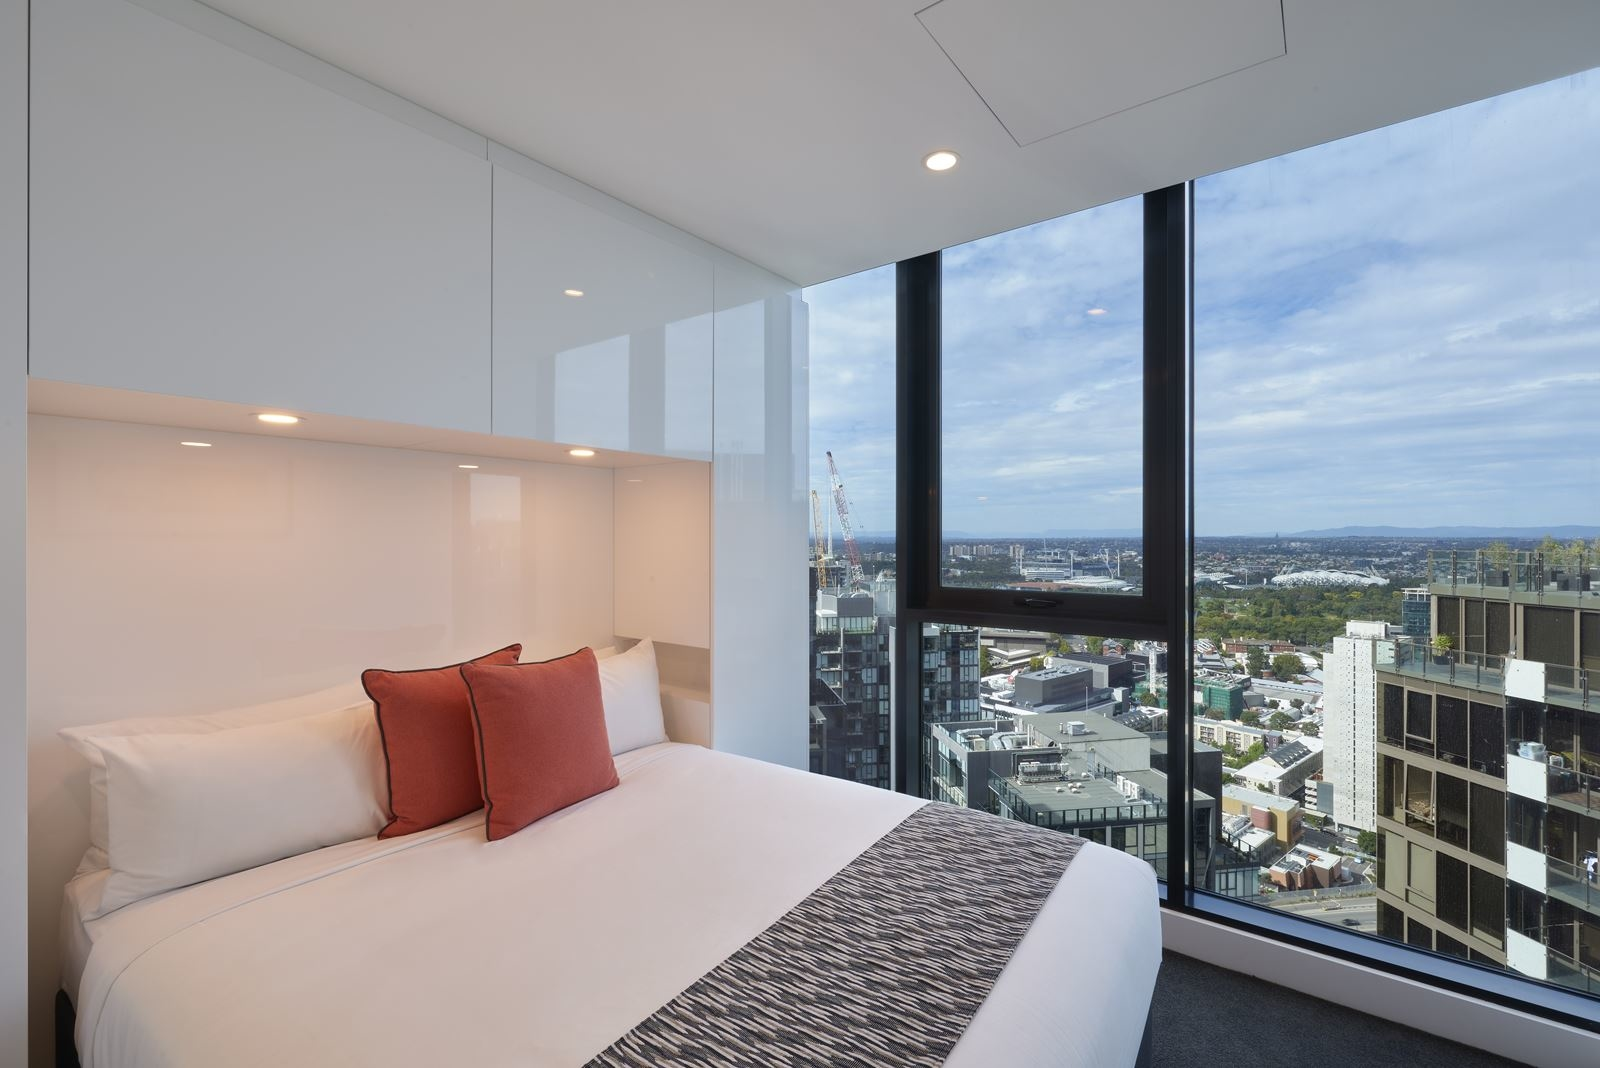 Melbourne CBD Accommodation | Where to Stay in Melbourne